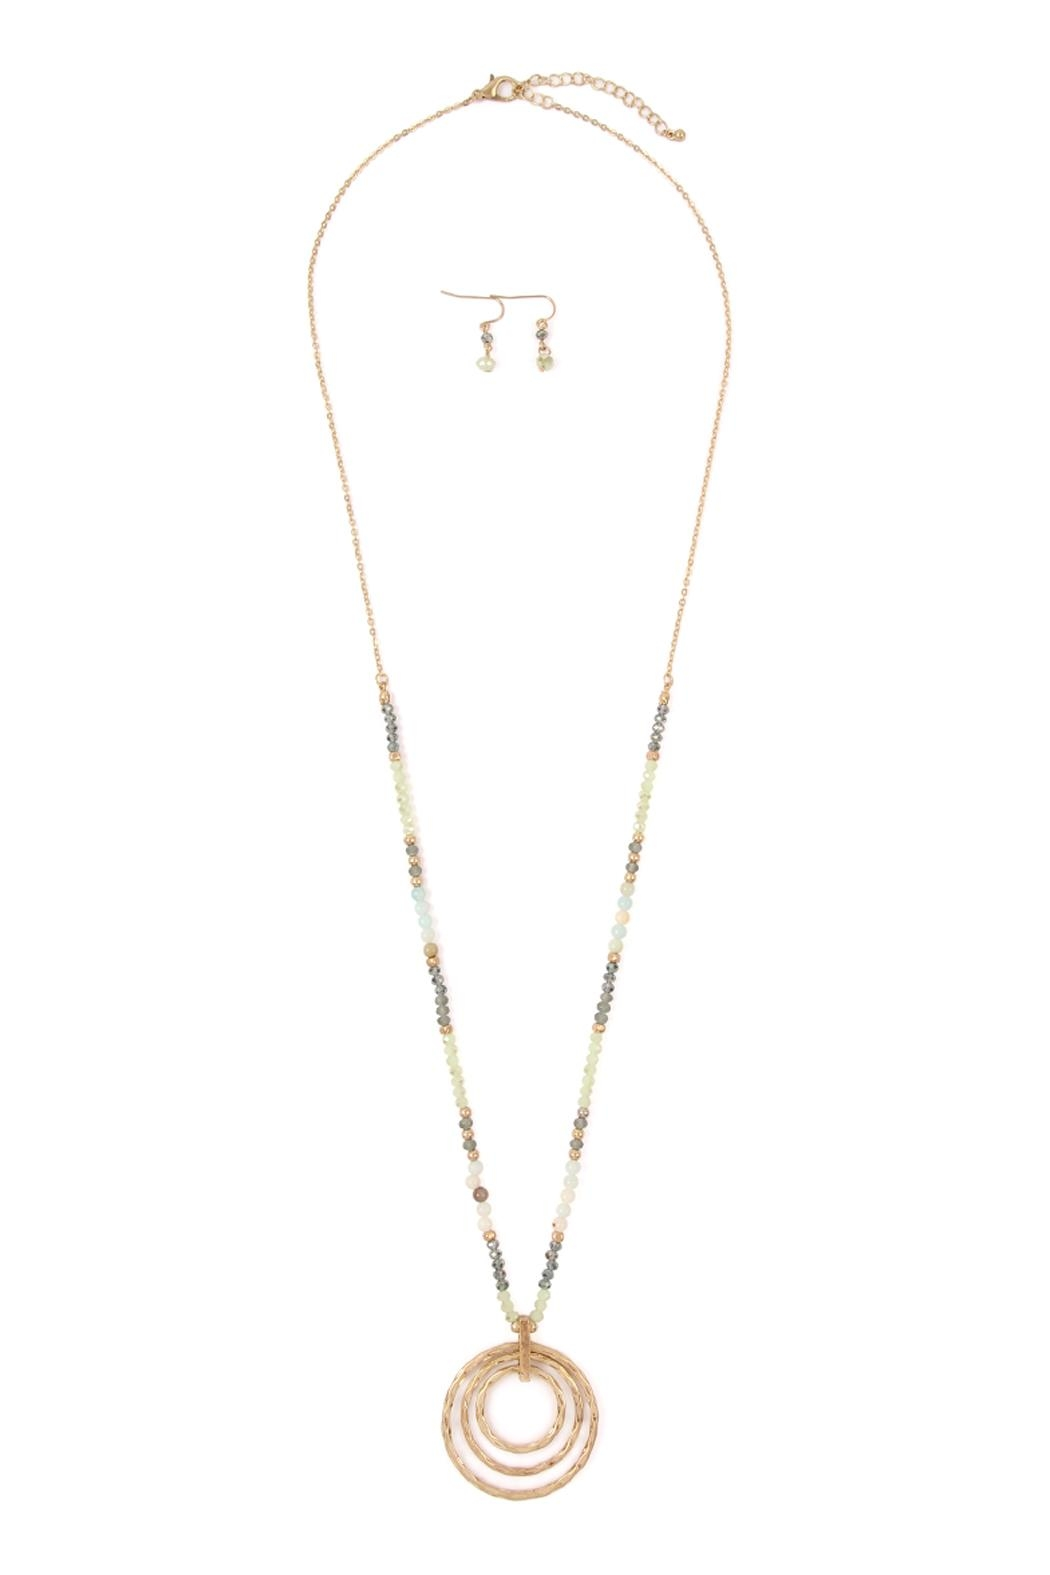 Riah Fashion Rondelle-Beads-Tri-Hoop Pendant-Necklace-And-Earrings-Set - Main Image